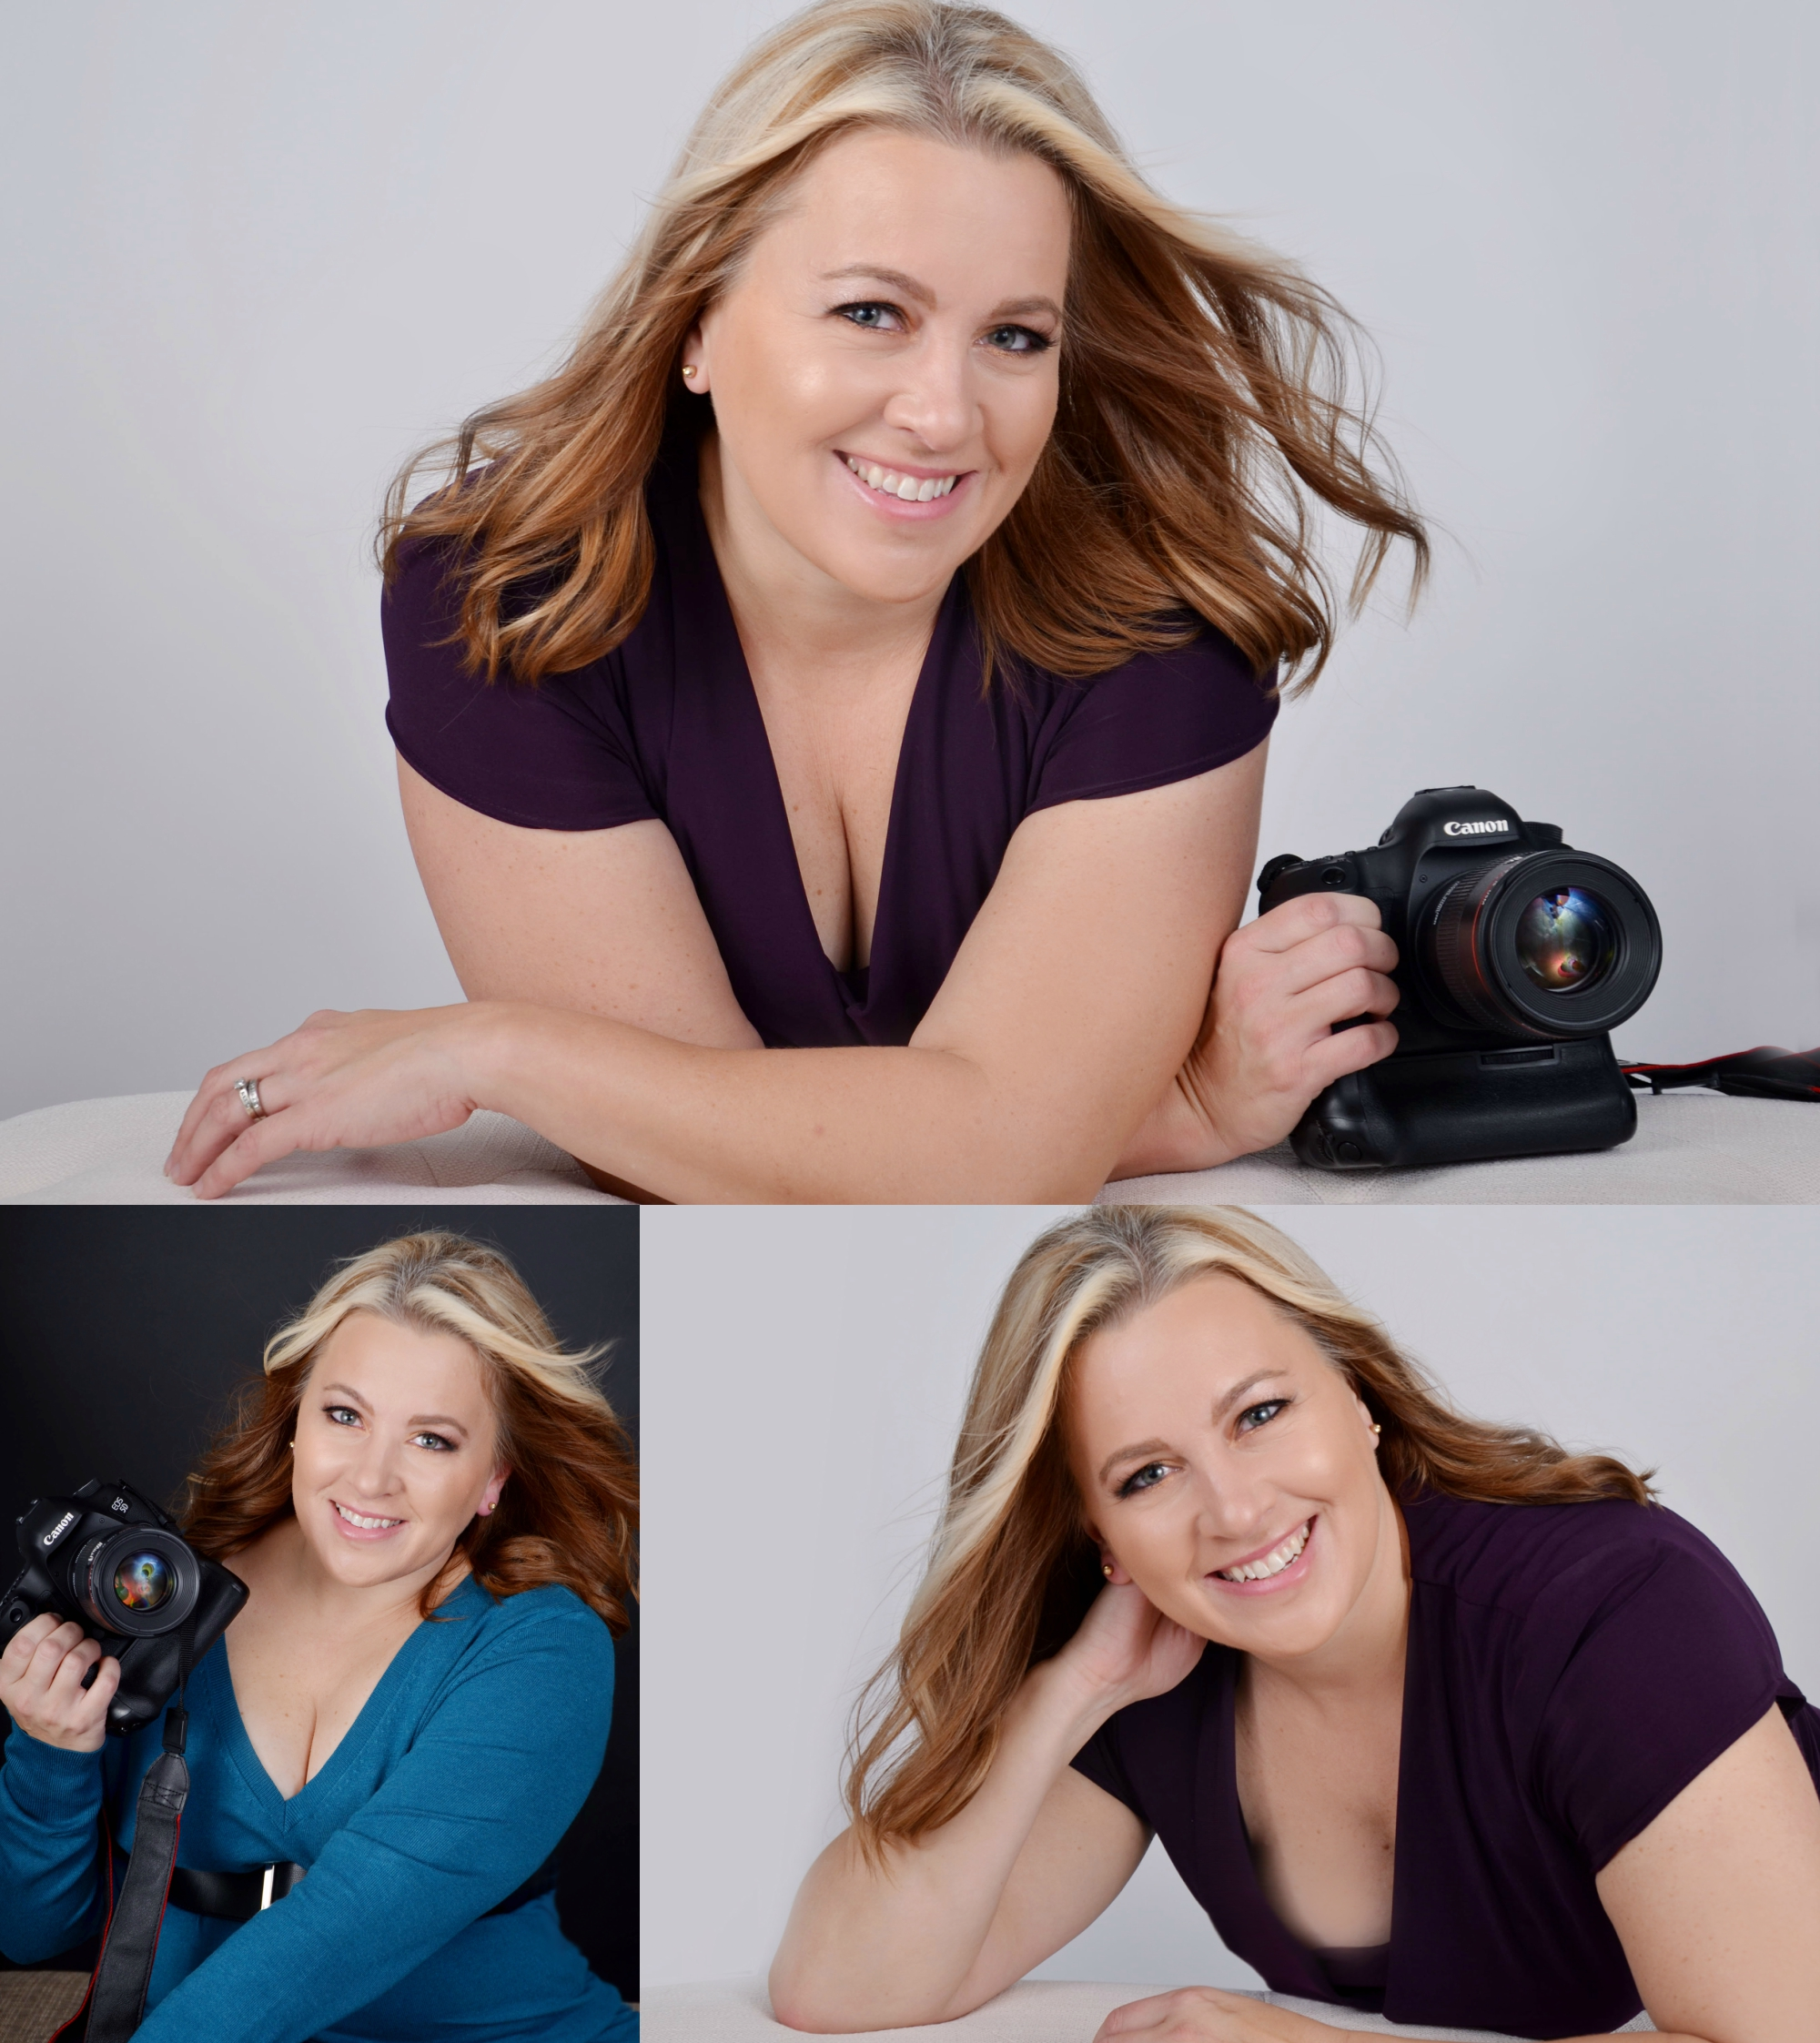 headshot photographer modern headshots professional portraits lancaster lebanon york wyomissing pennsylvania corporate